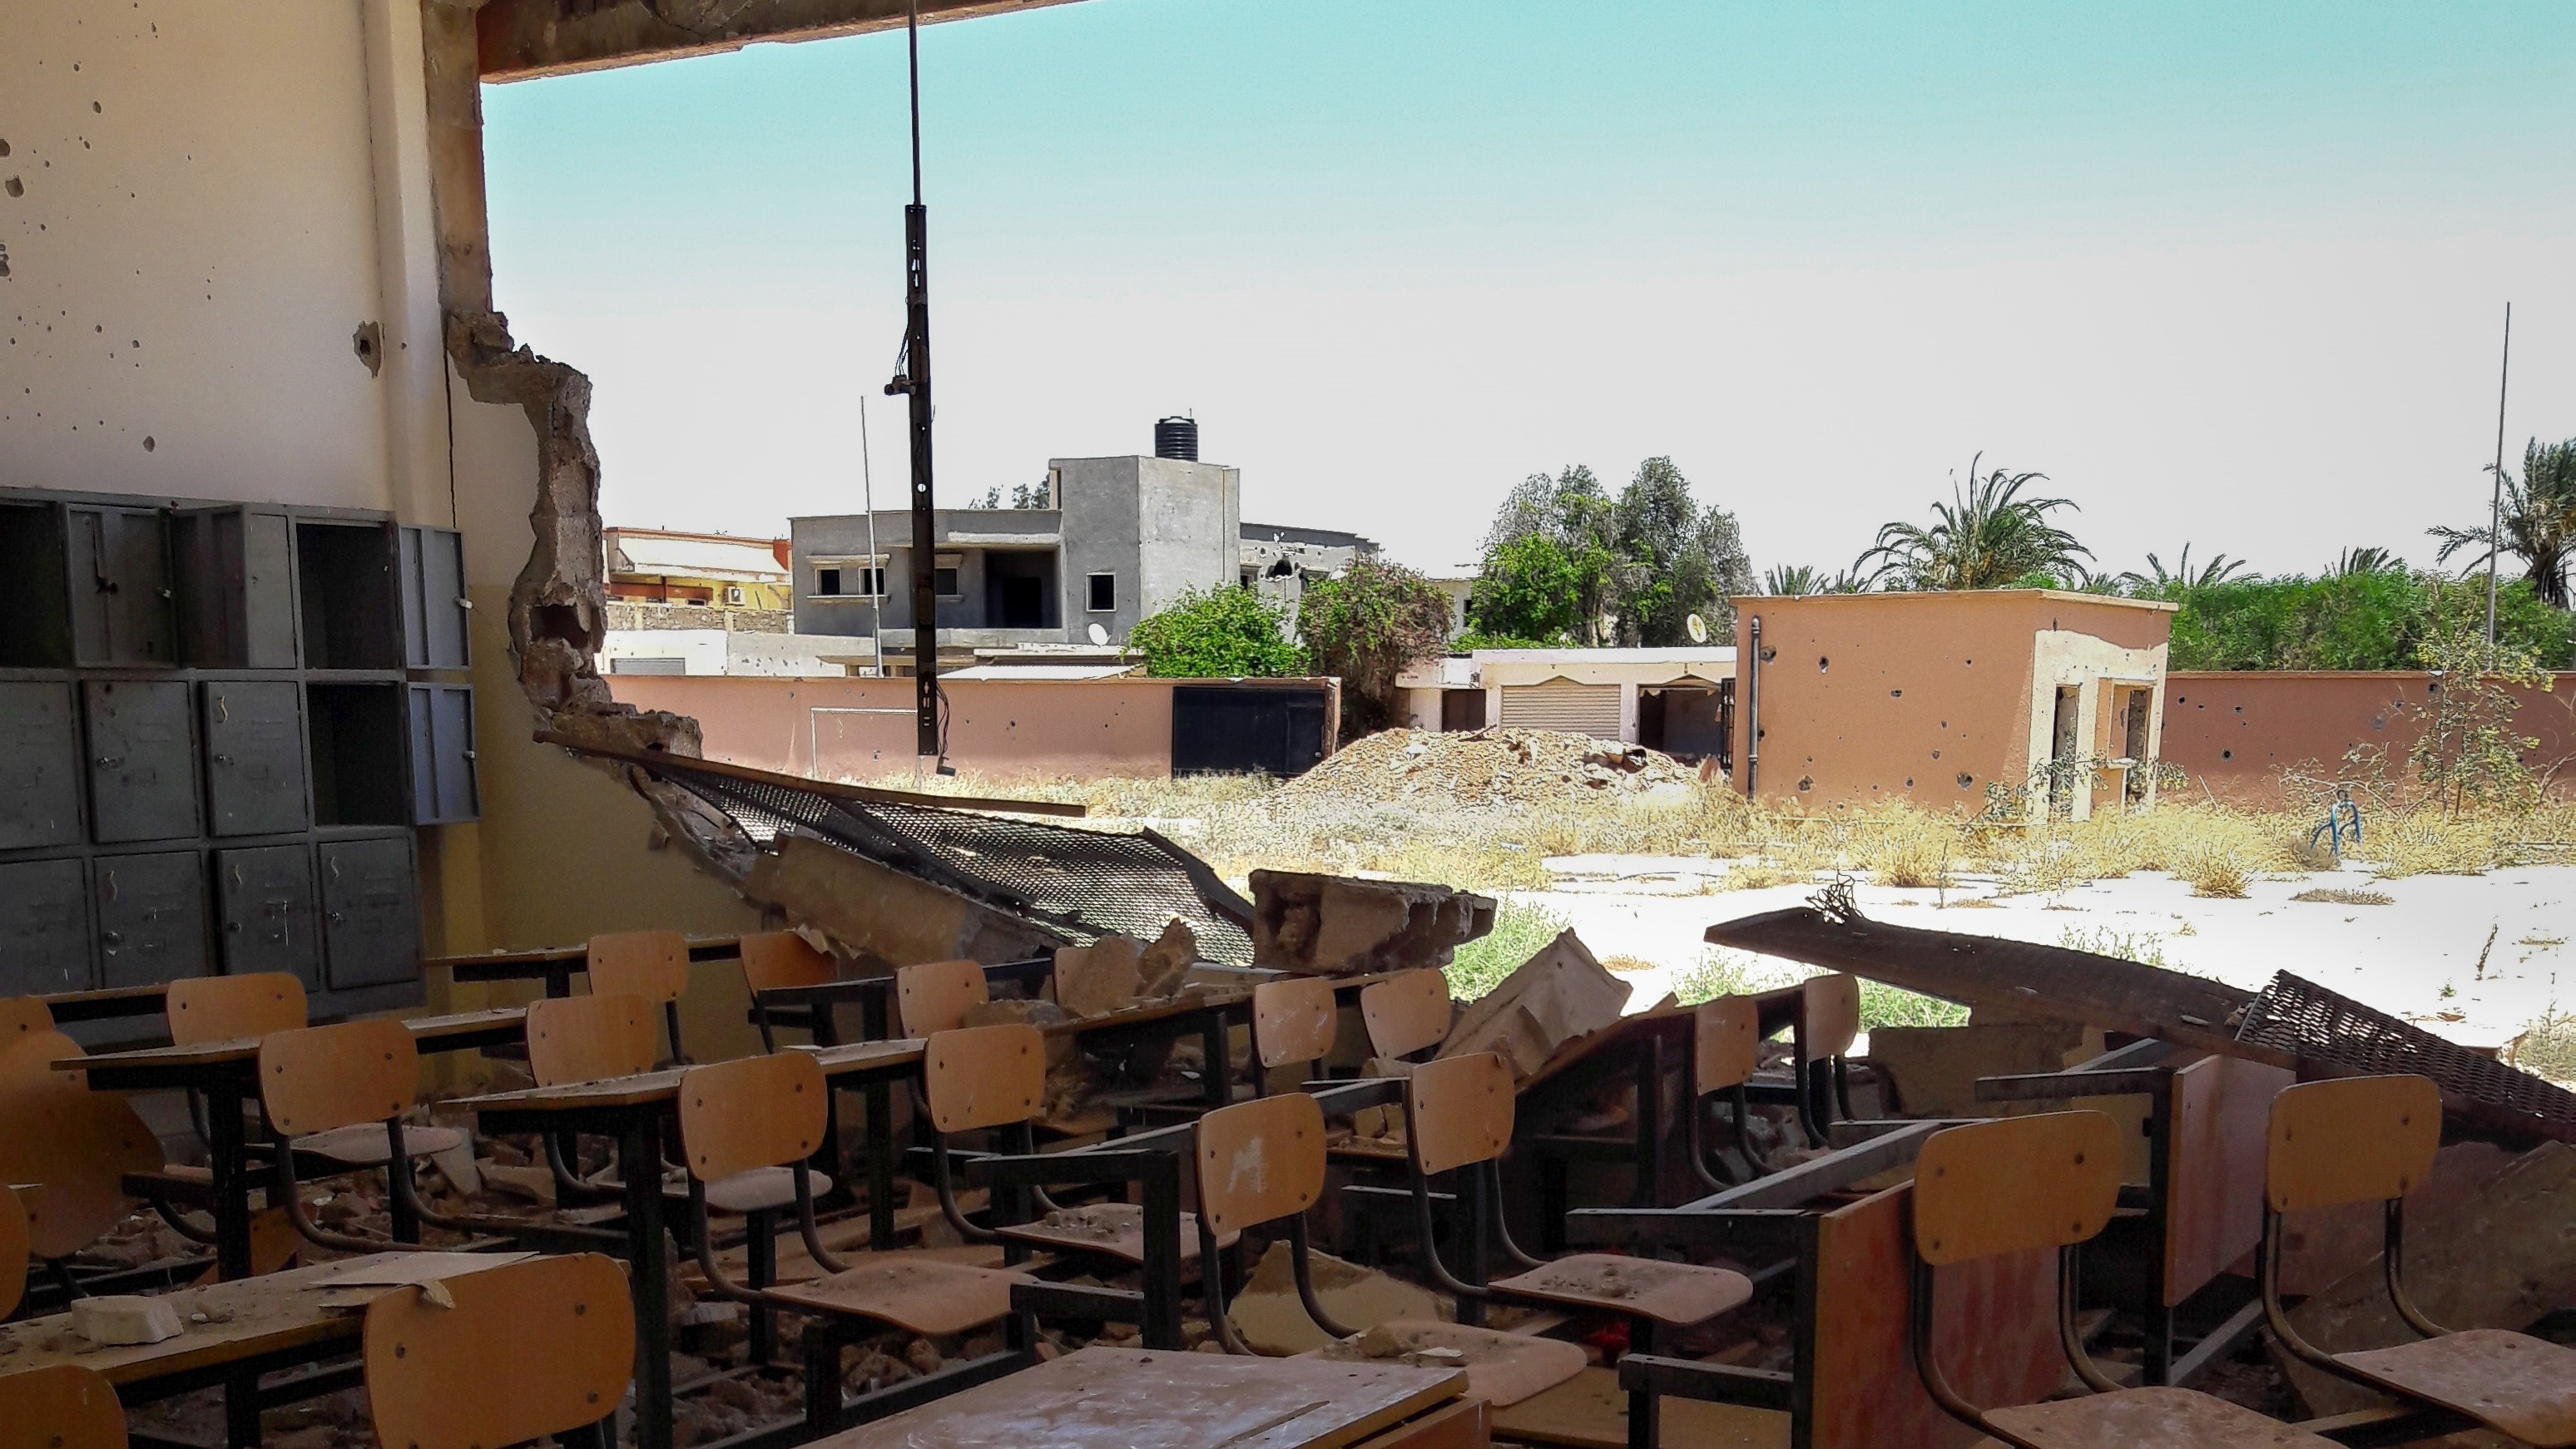 Destroyed school classroom in the Guwarsha neighbourhood of Benghazi, Eastern Libya. Credits: ACTED/Nada Elfeituri, June 2017